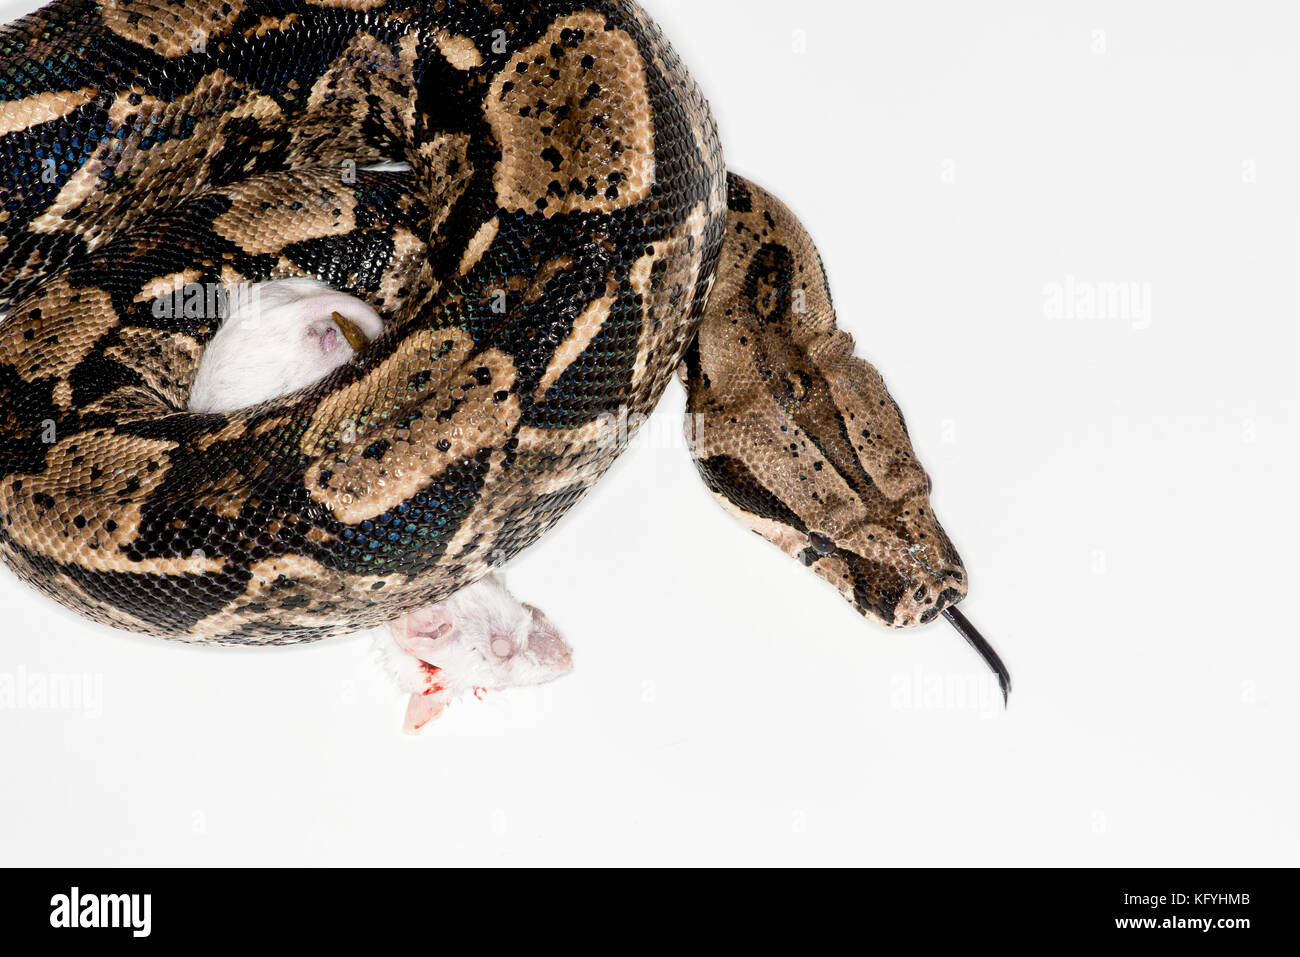 St. Paul, Minnesota. Personal pet. Columbian Red-tailed Boa, also called the common boa, from the family Boidae. - Stock Image